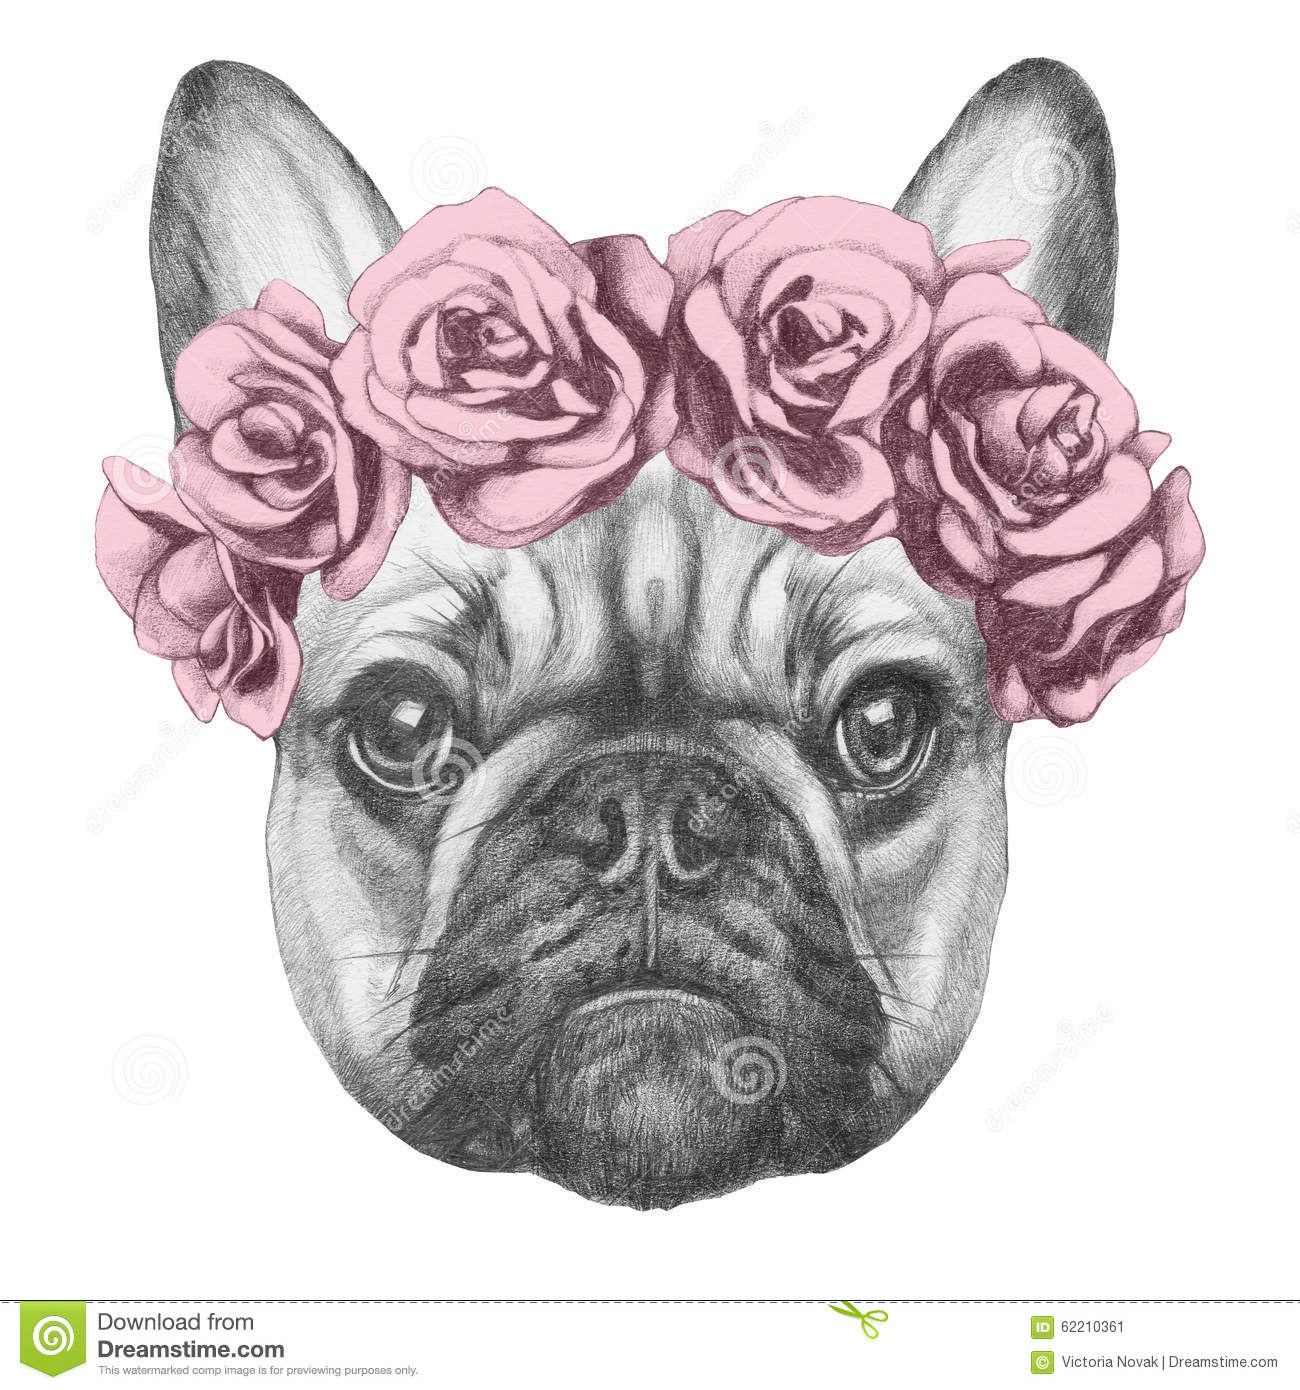 Bouledogue Decoration Design Original Drawing Of French Bulldog With Roses. Stock